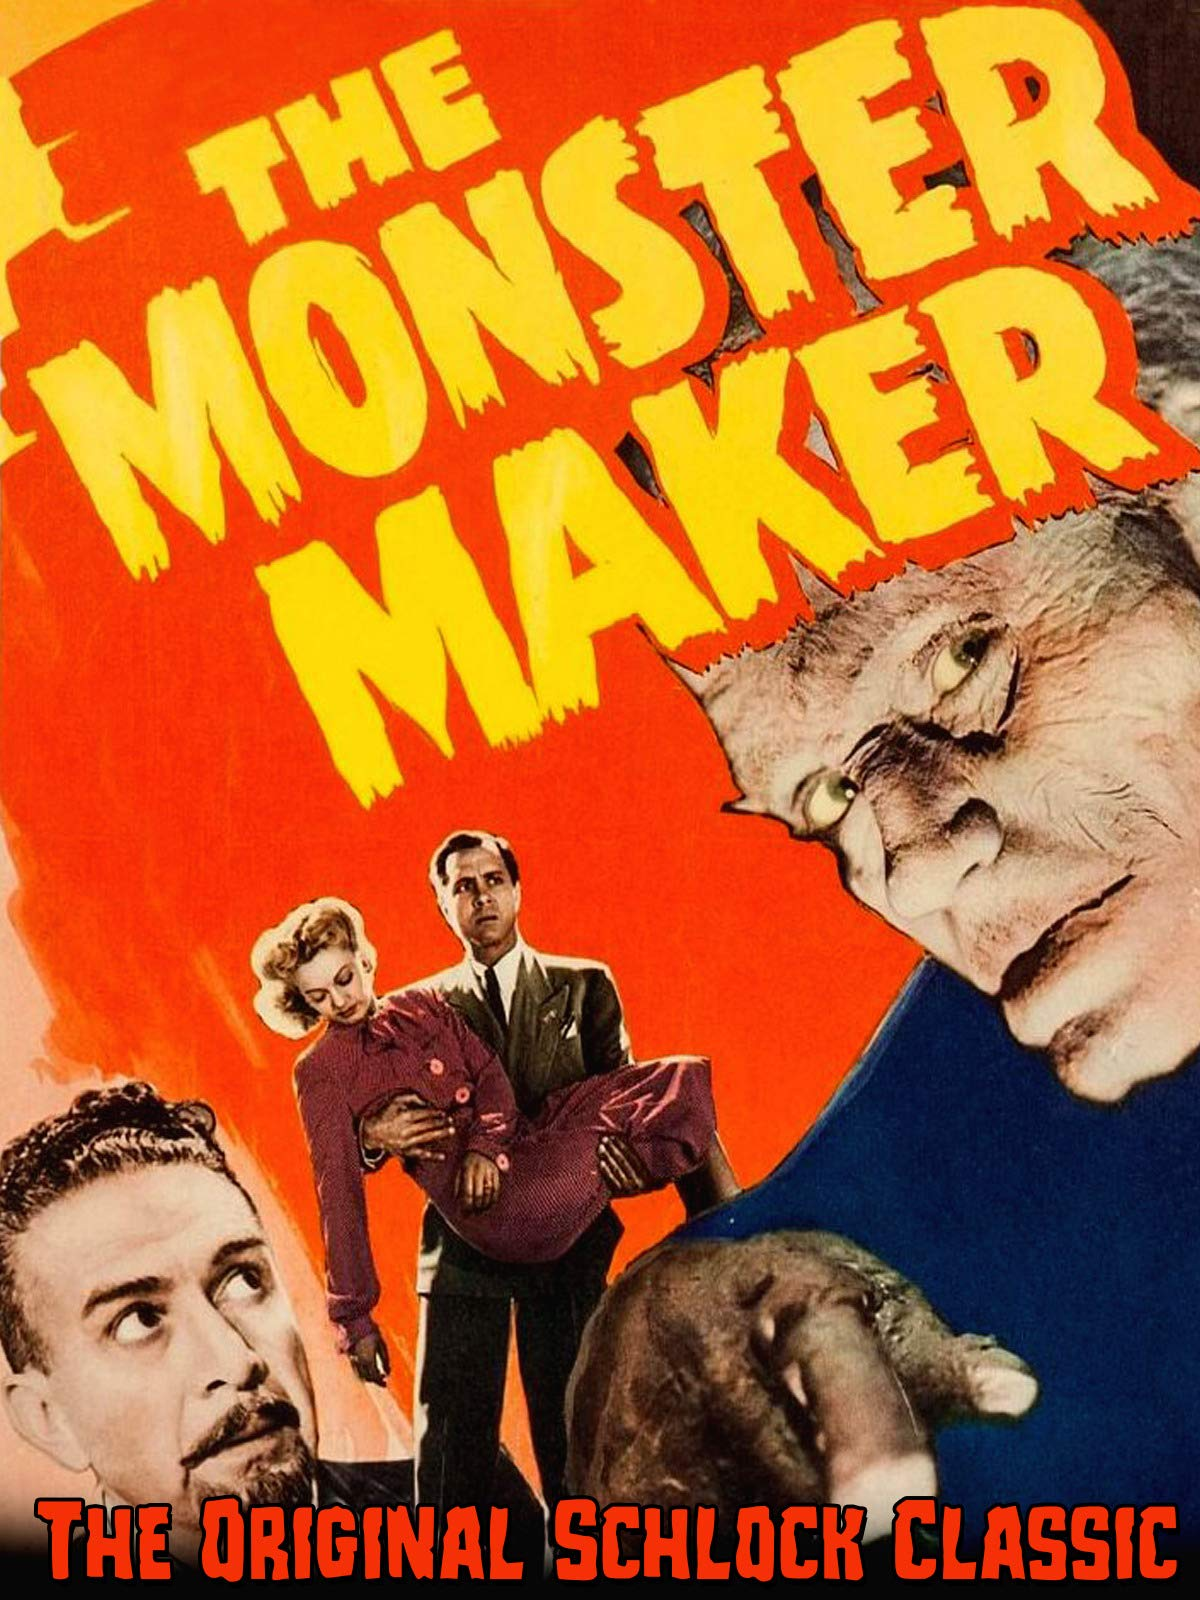 The Monster Maker - The Original Schlock Classic